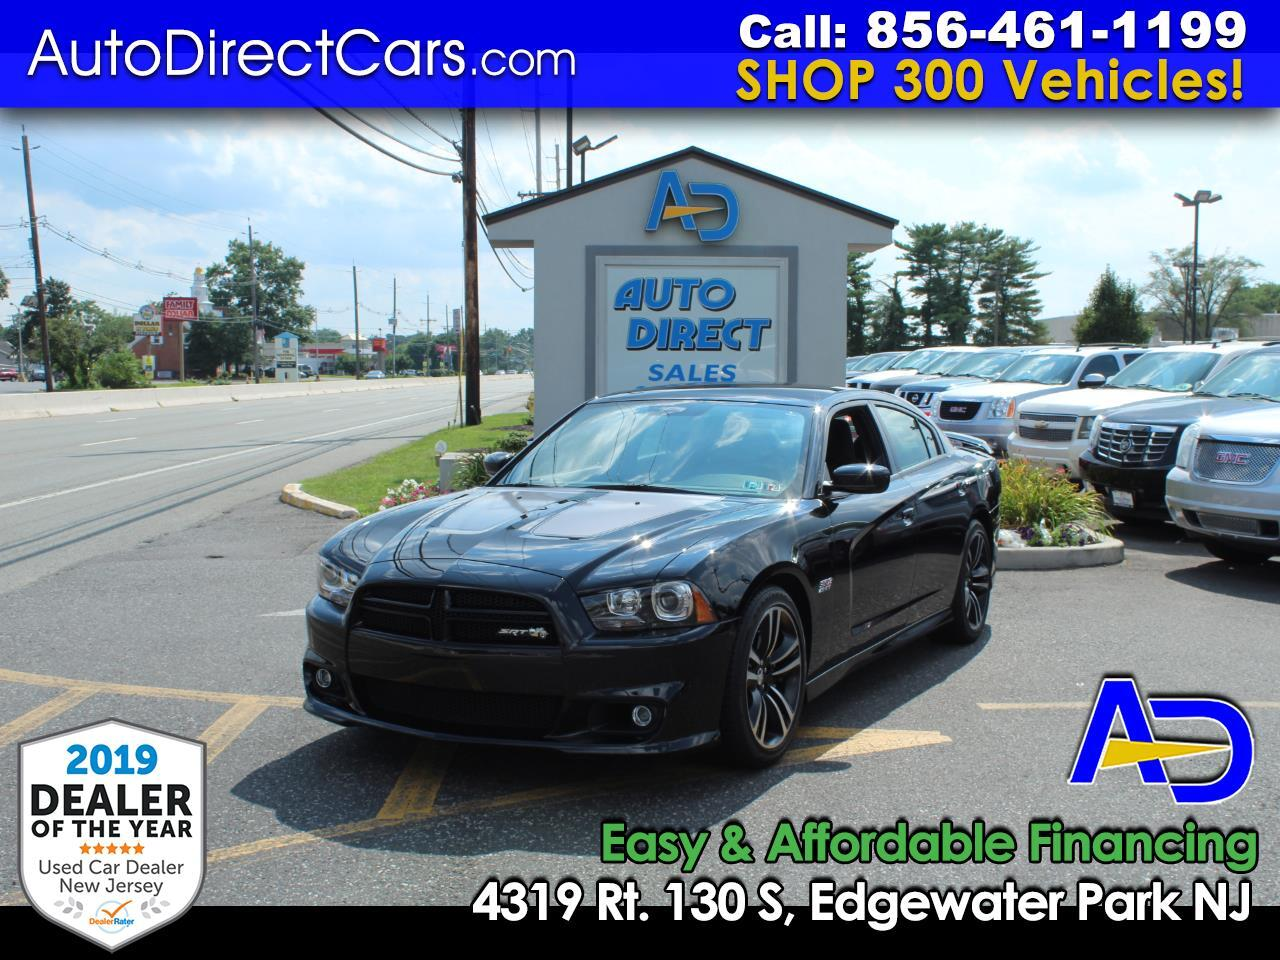 2012 Dodge Charger 4dr Sdn SRT8 Super Bee RWD